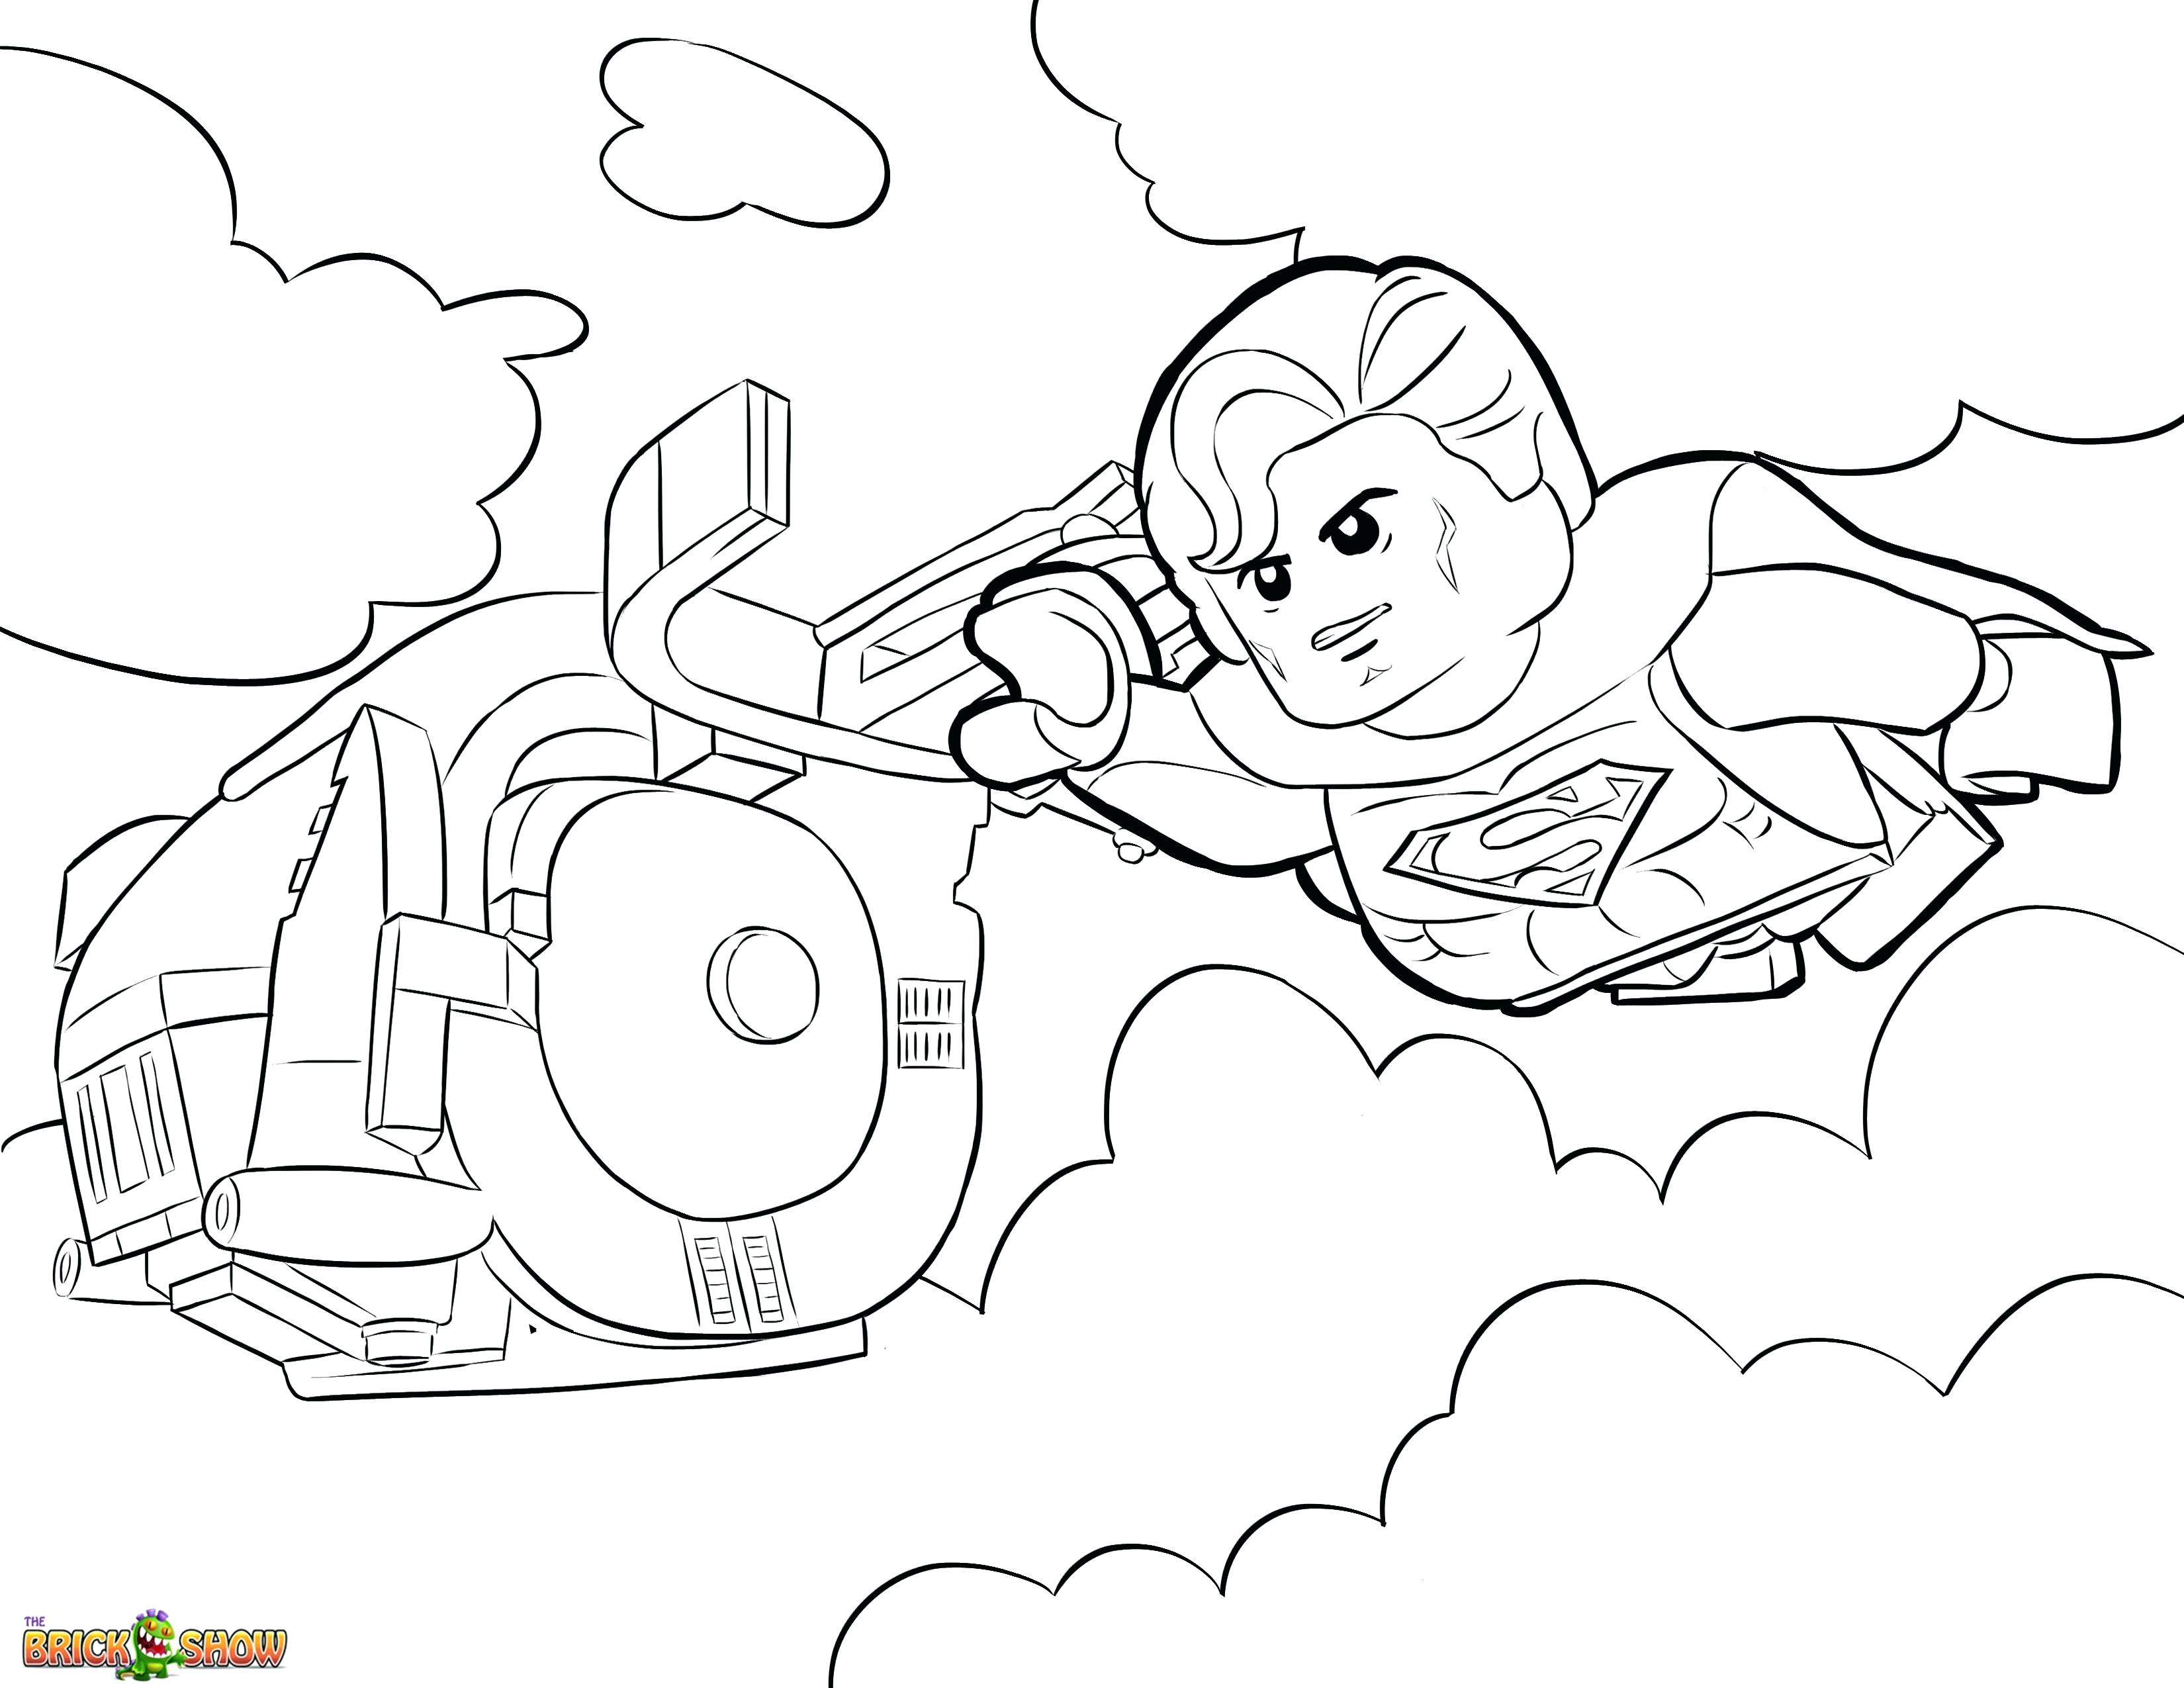 3300x2550 Coloring Pages For Kids Pdf Justice League To Print Best